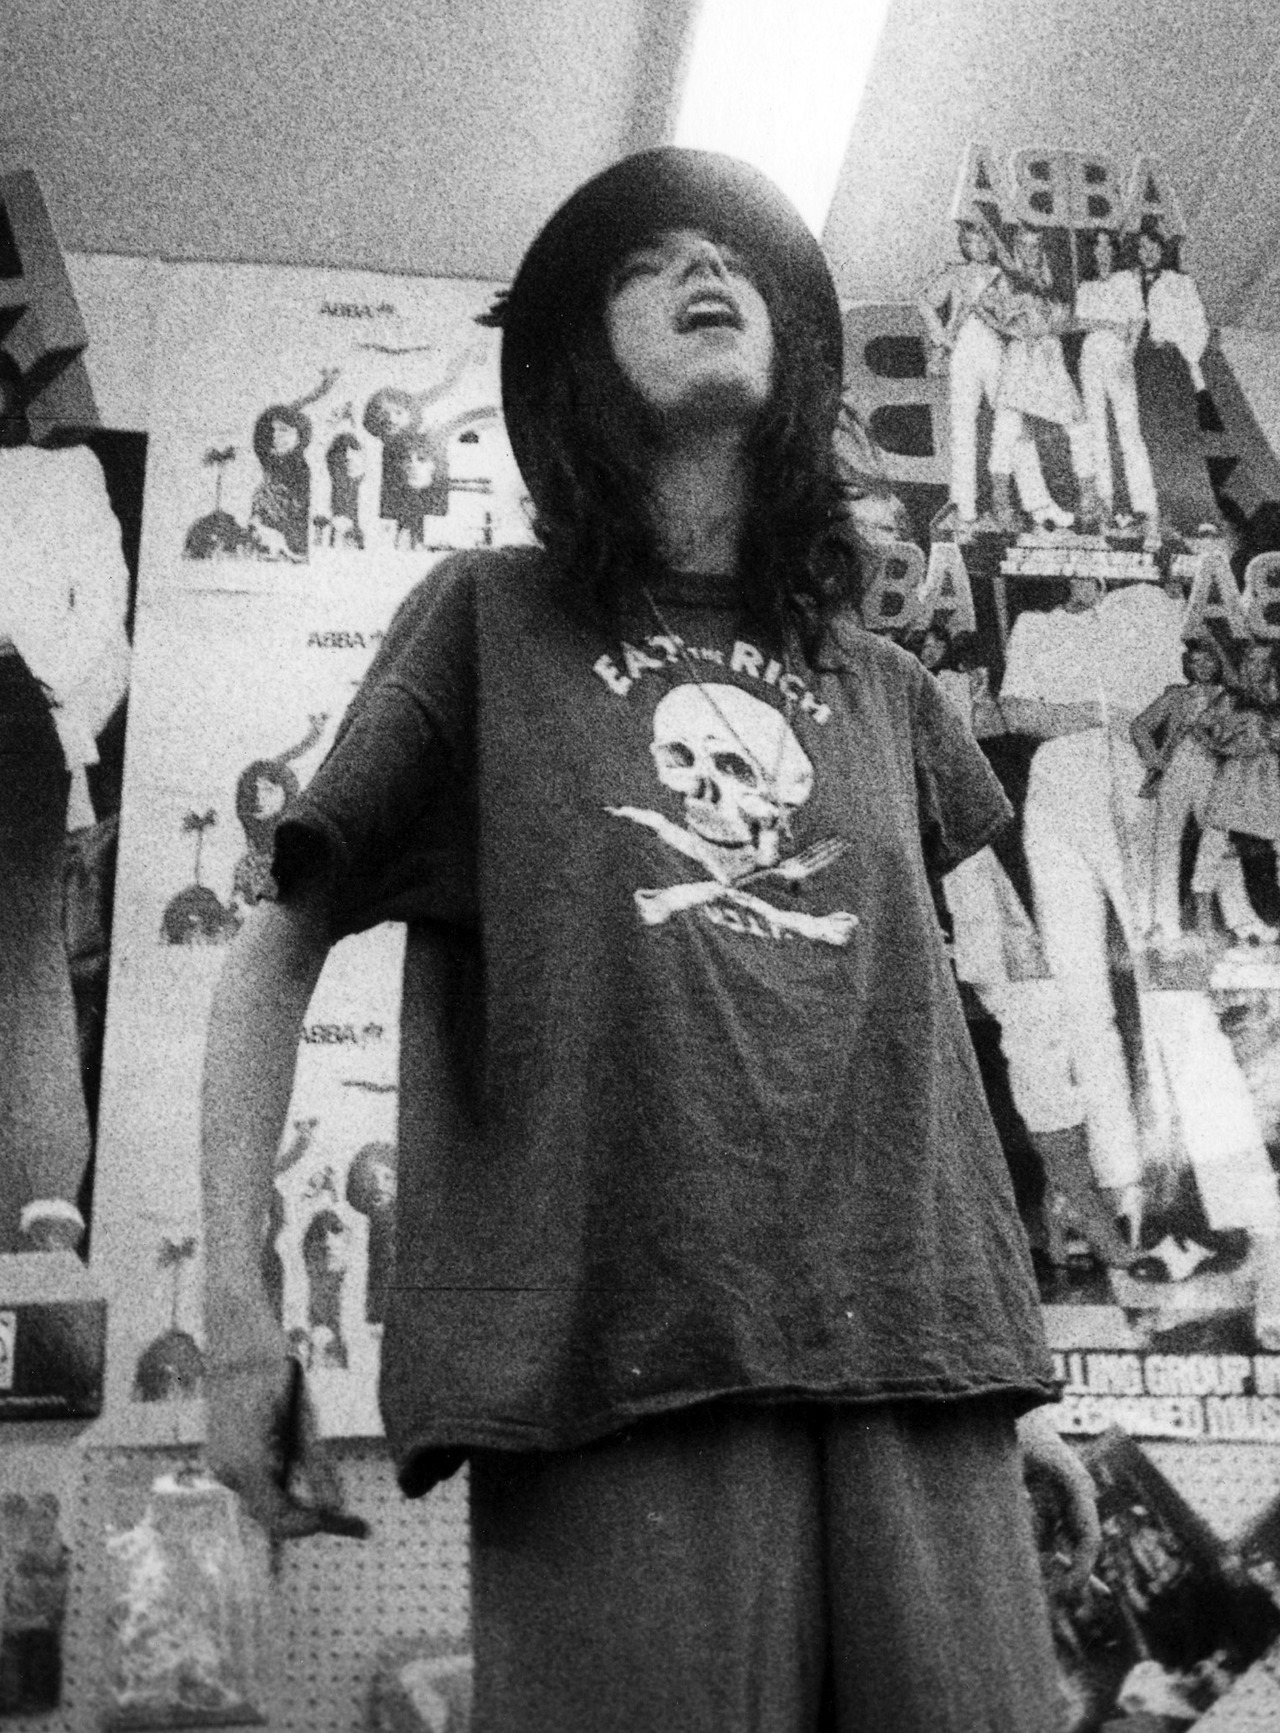 zombiesenelghetto:  Patti Smith, photo Godlis 1977